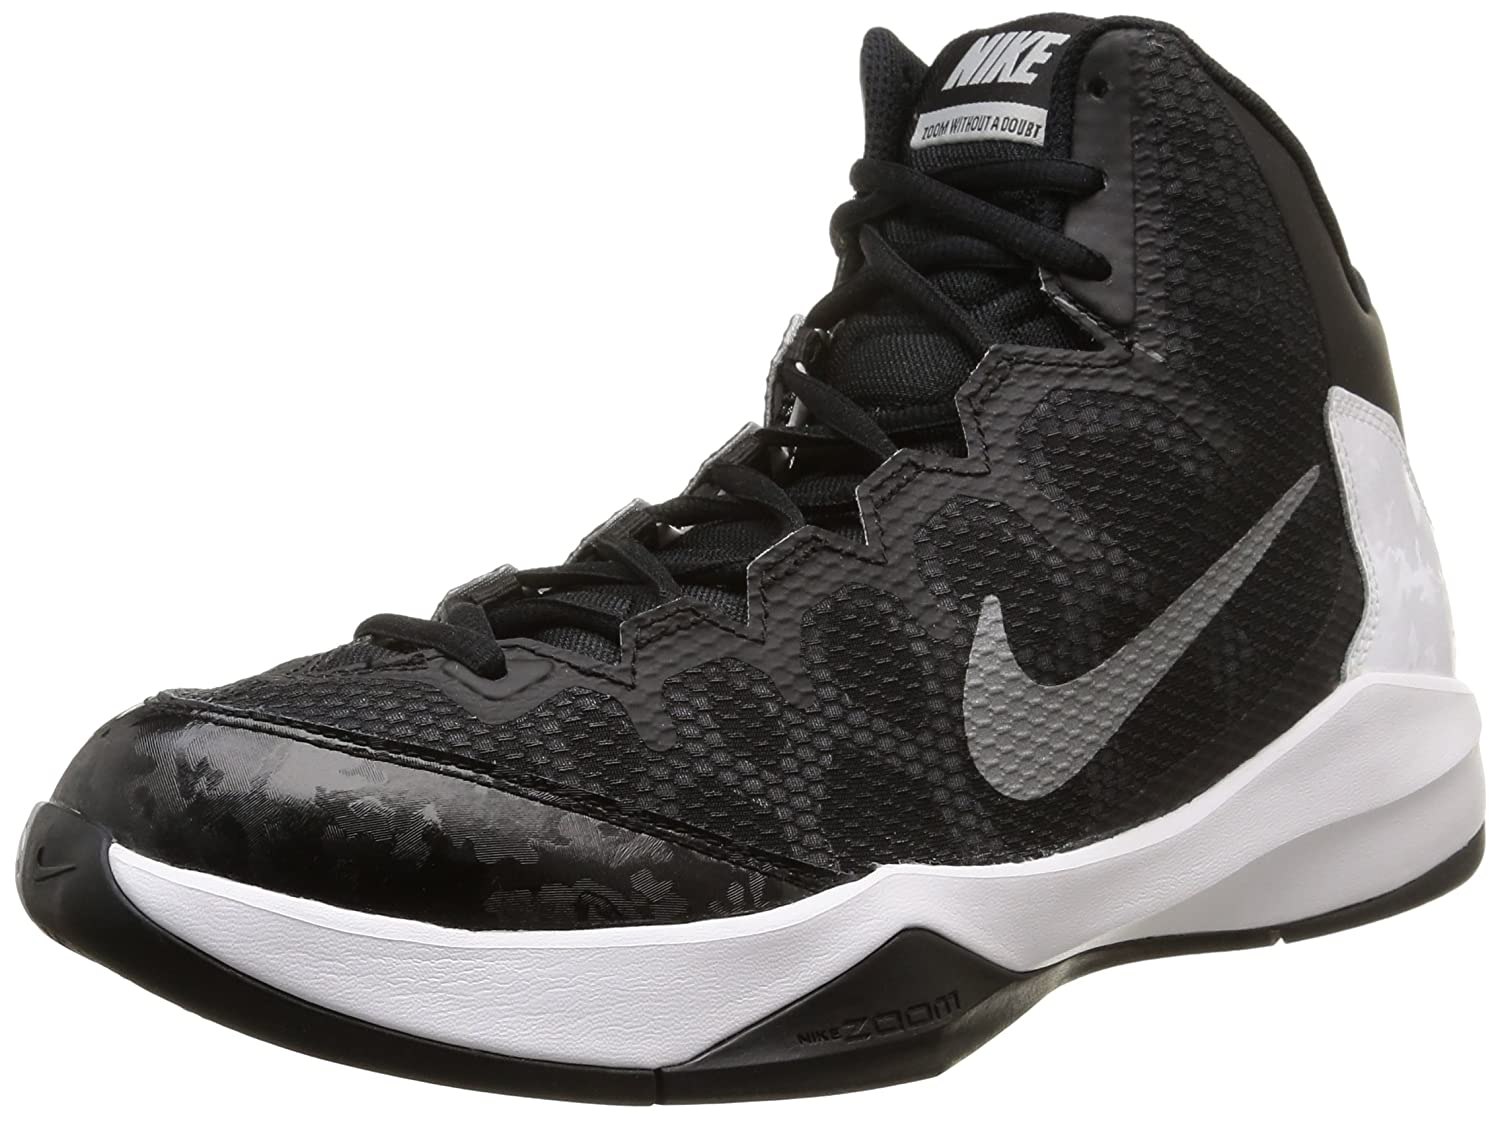 Nike Zoom Without Without Without A Doubt Herren Basketballschuhe 851ddc